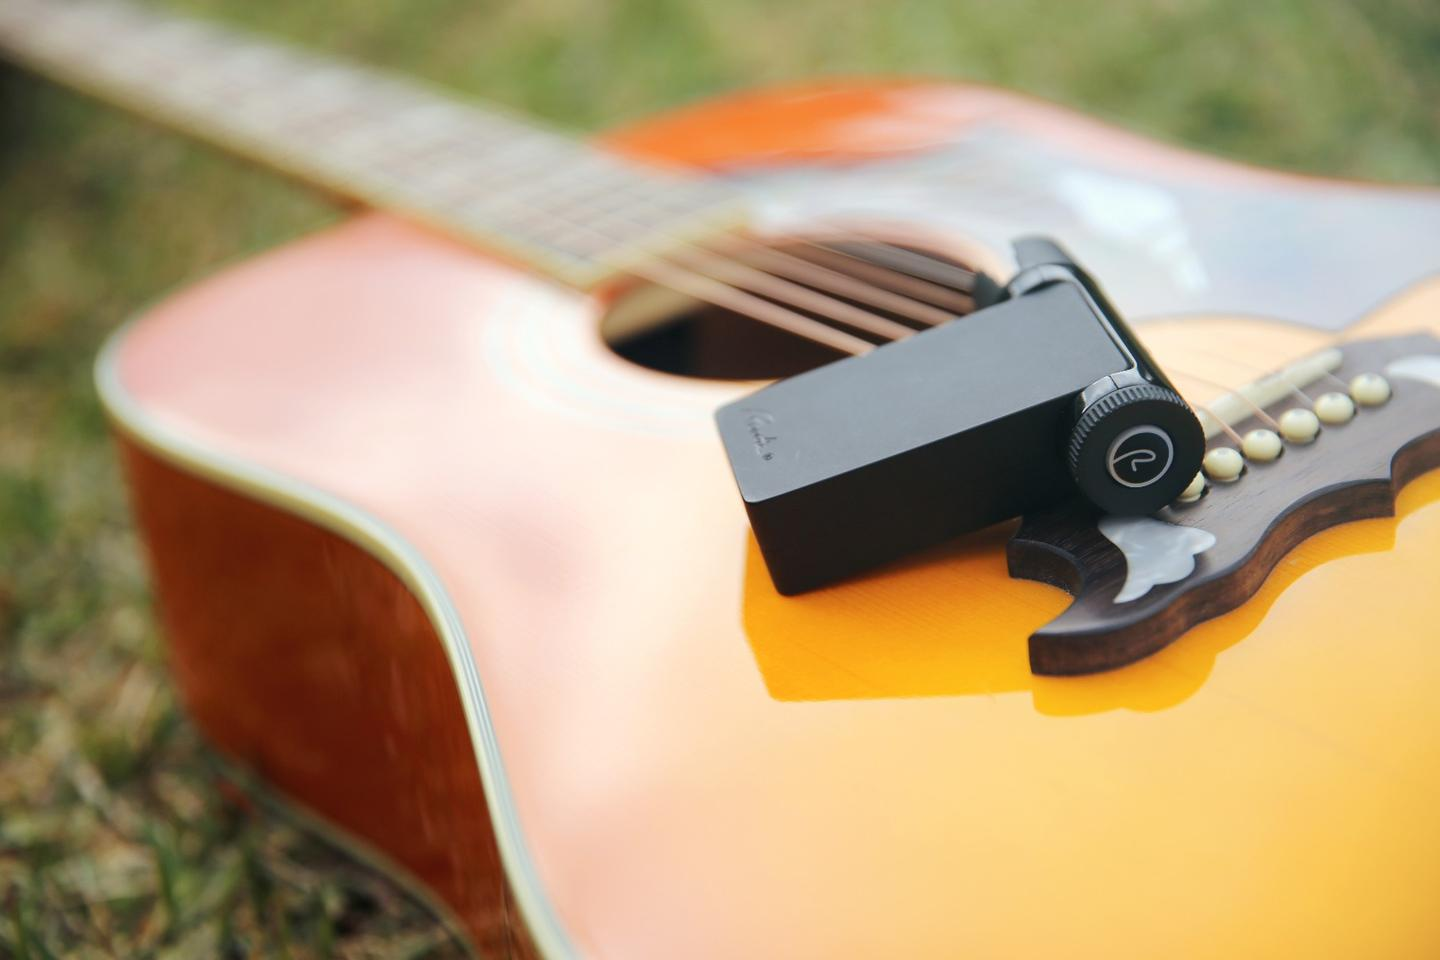 The Roadie 2 can be used to tuneelectric, acoustic, classical or steel guitars, as well as 7- and 12-string guitars, ukuleles, mandolins and banjos